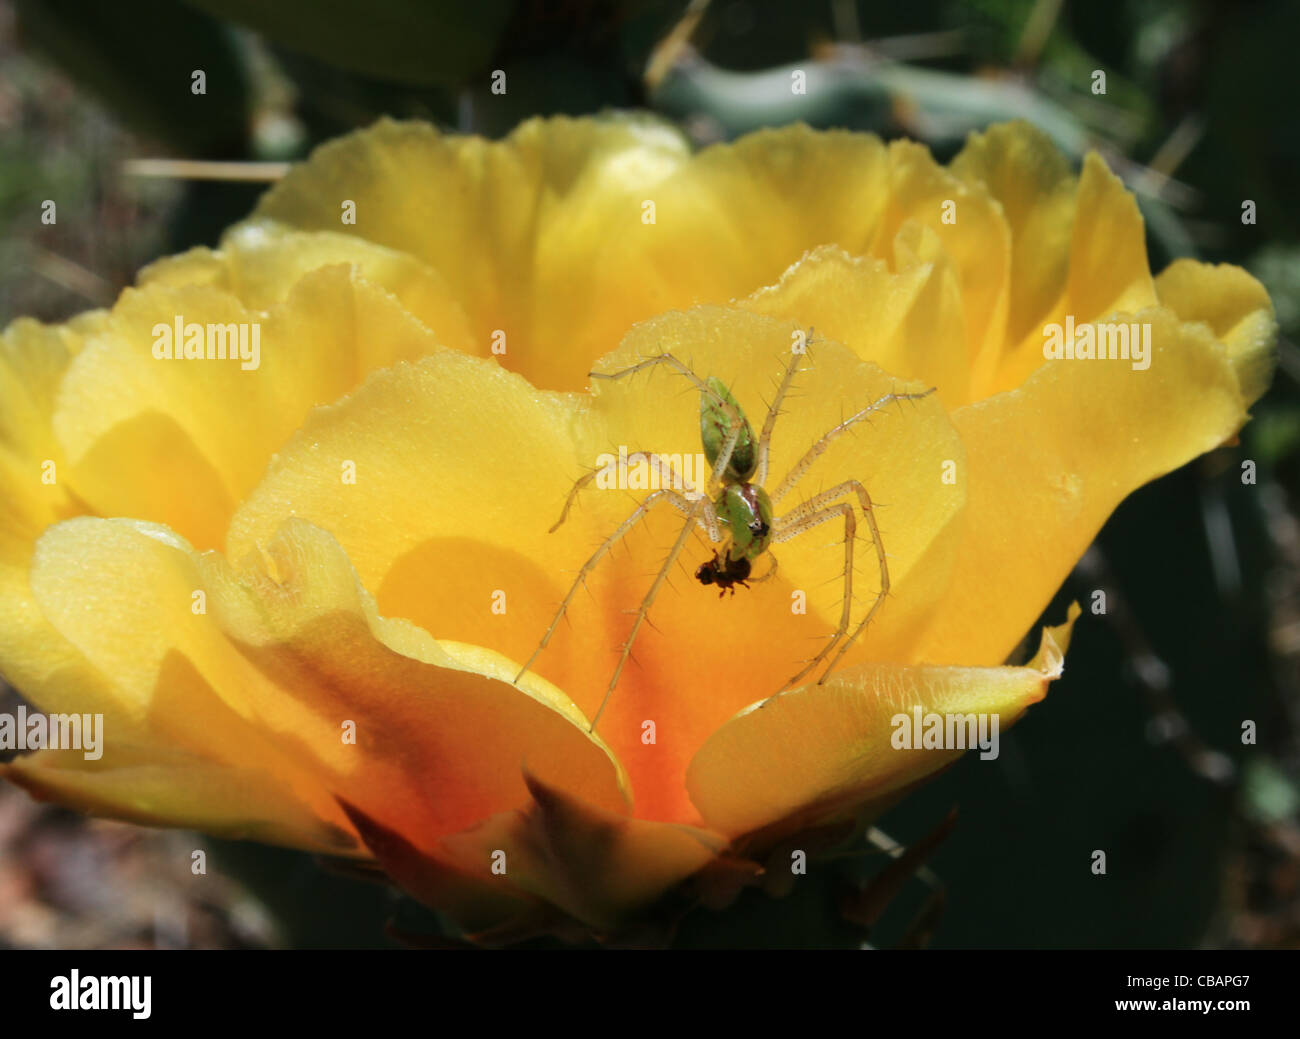 green lynx spider (Peucetia viridans) on yellow cactus flower eating a small insect Stock Photo